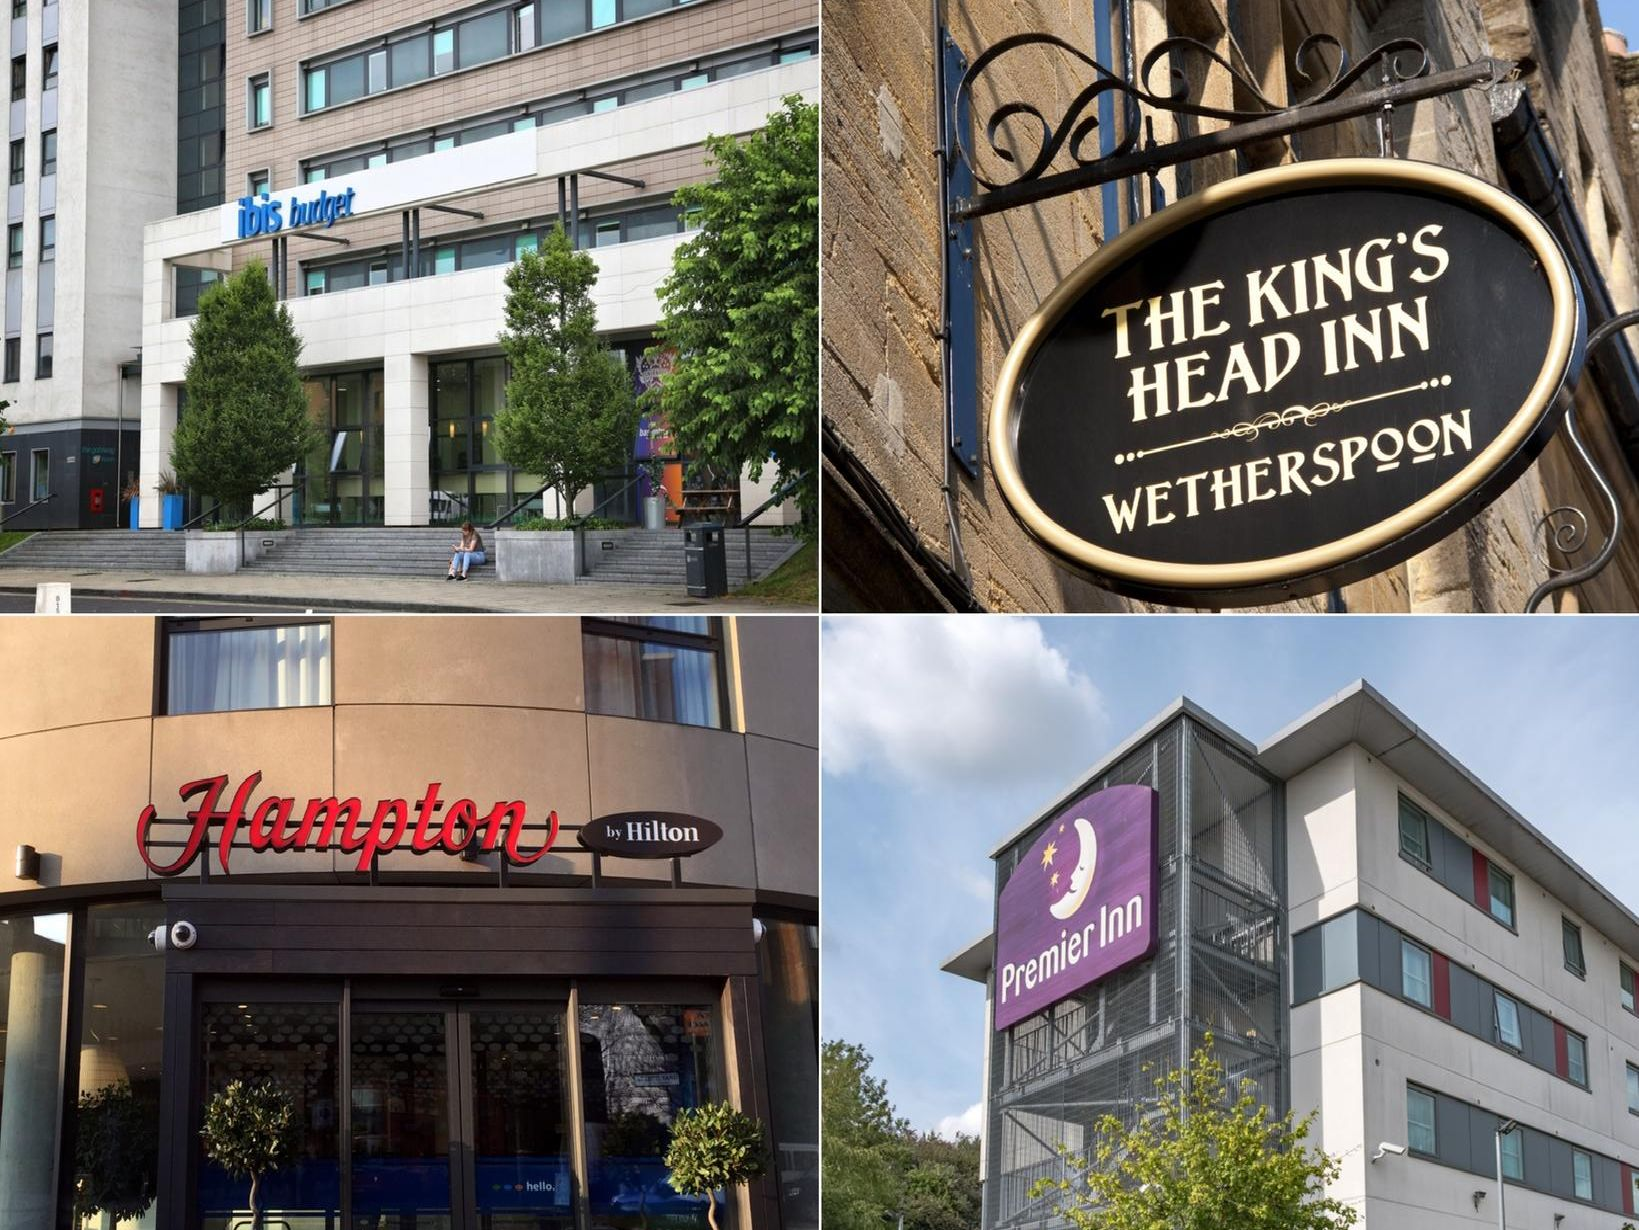 These are the best and worst hotel chains in Britain according to a Which? customer survey.